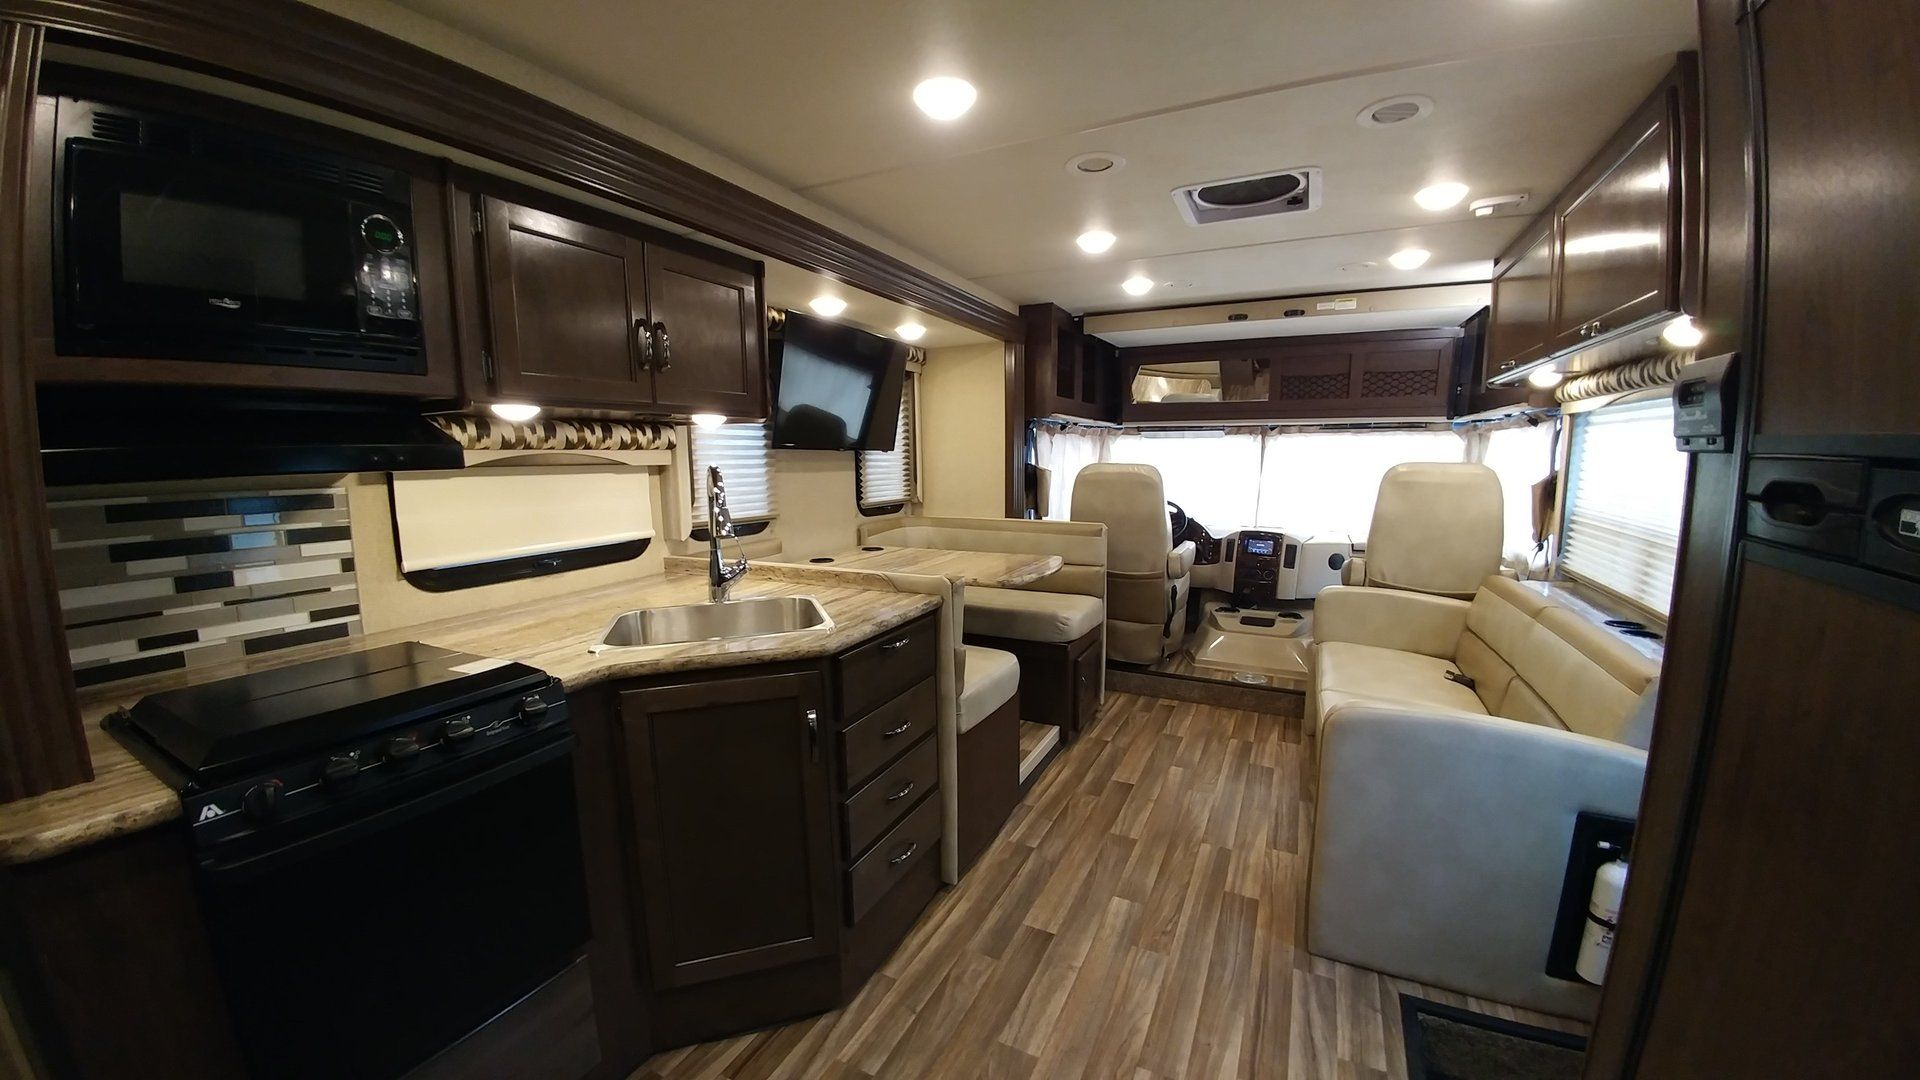 2018 Thor ACE 27.2 Plenty of room for you and your